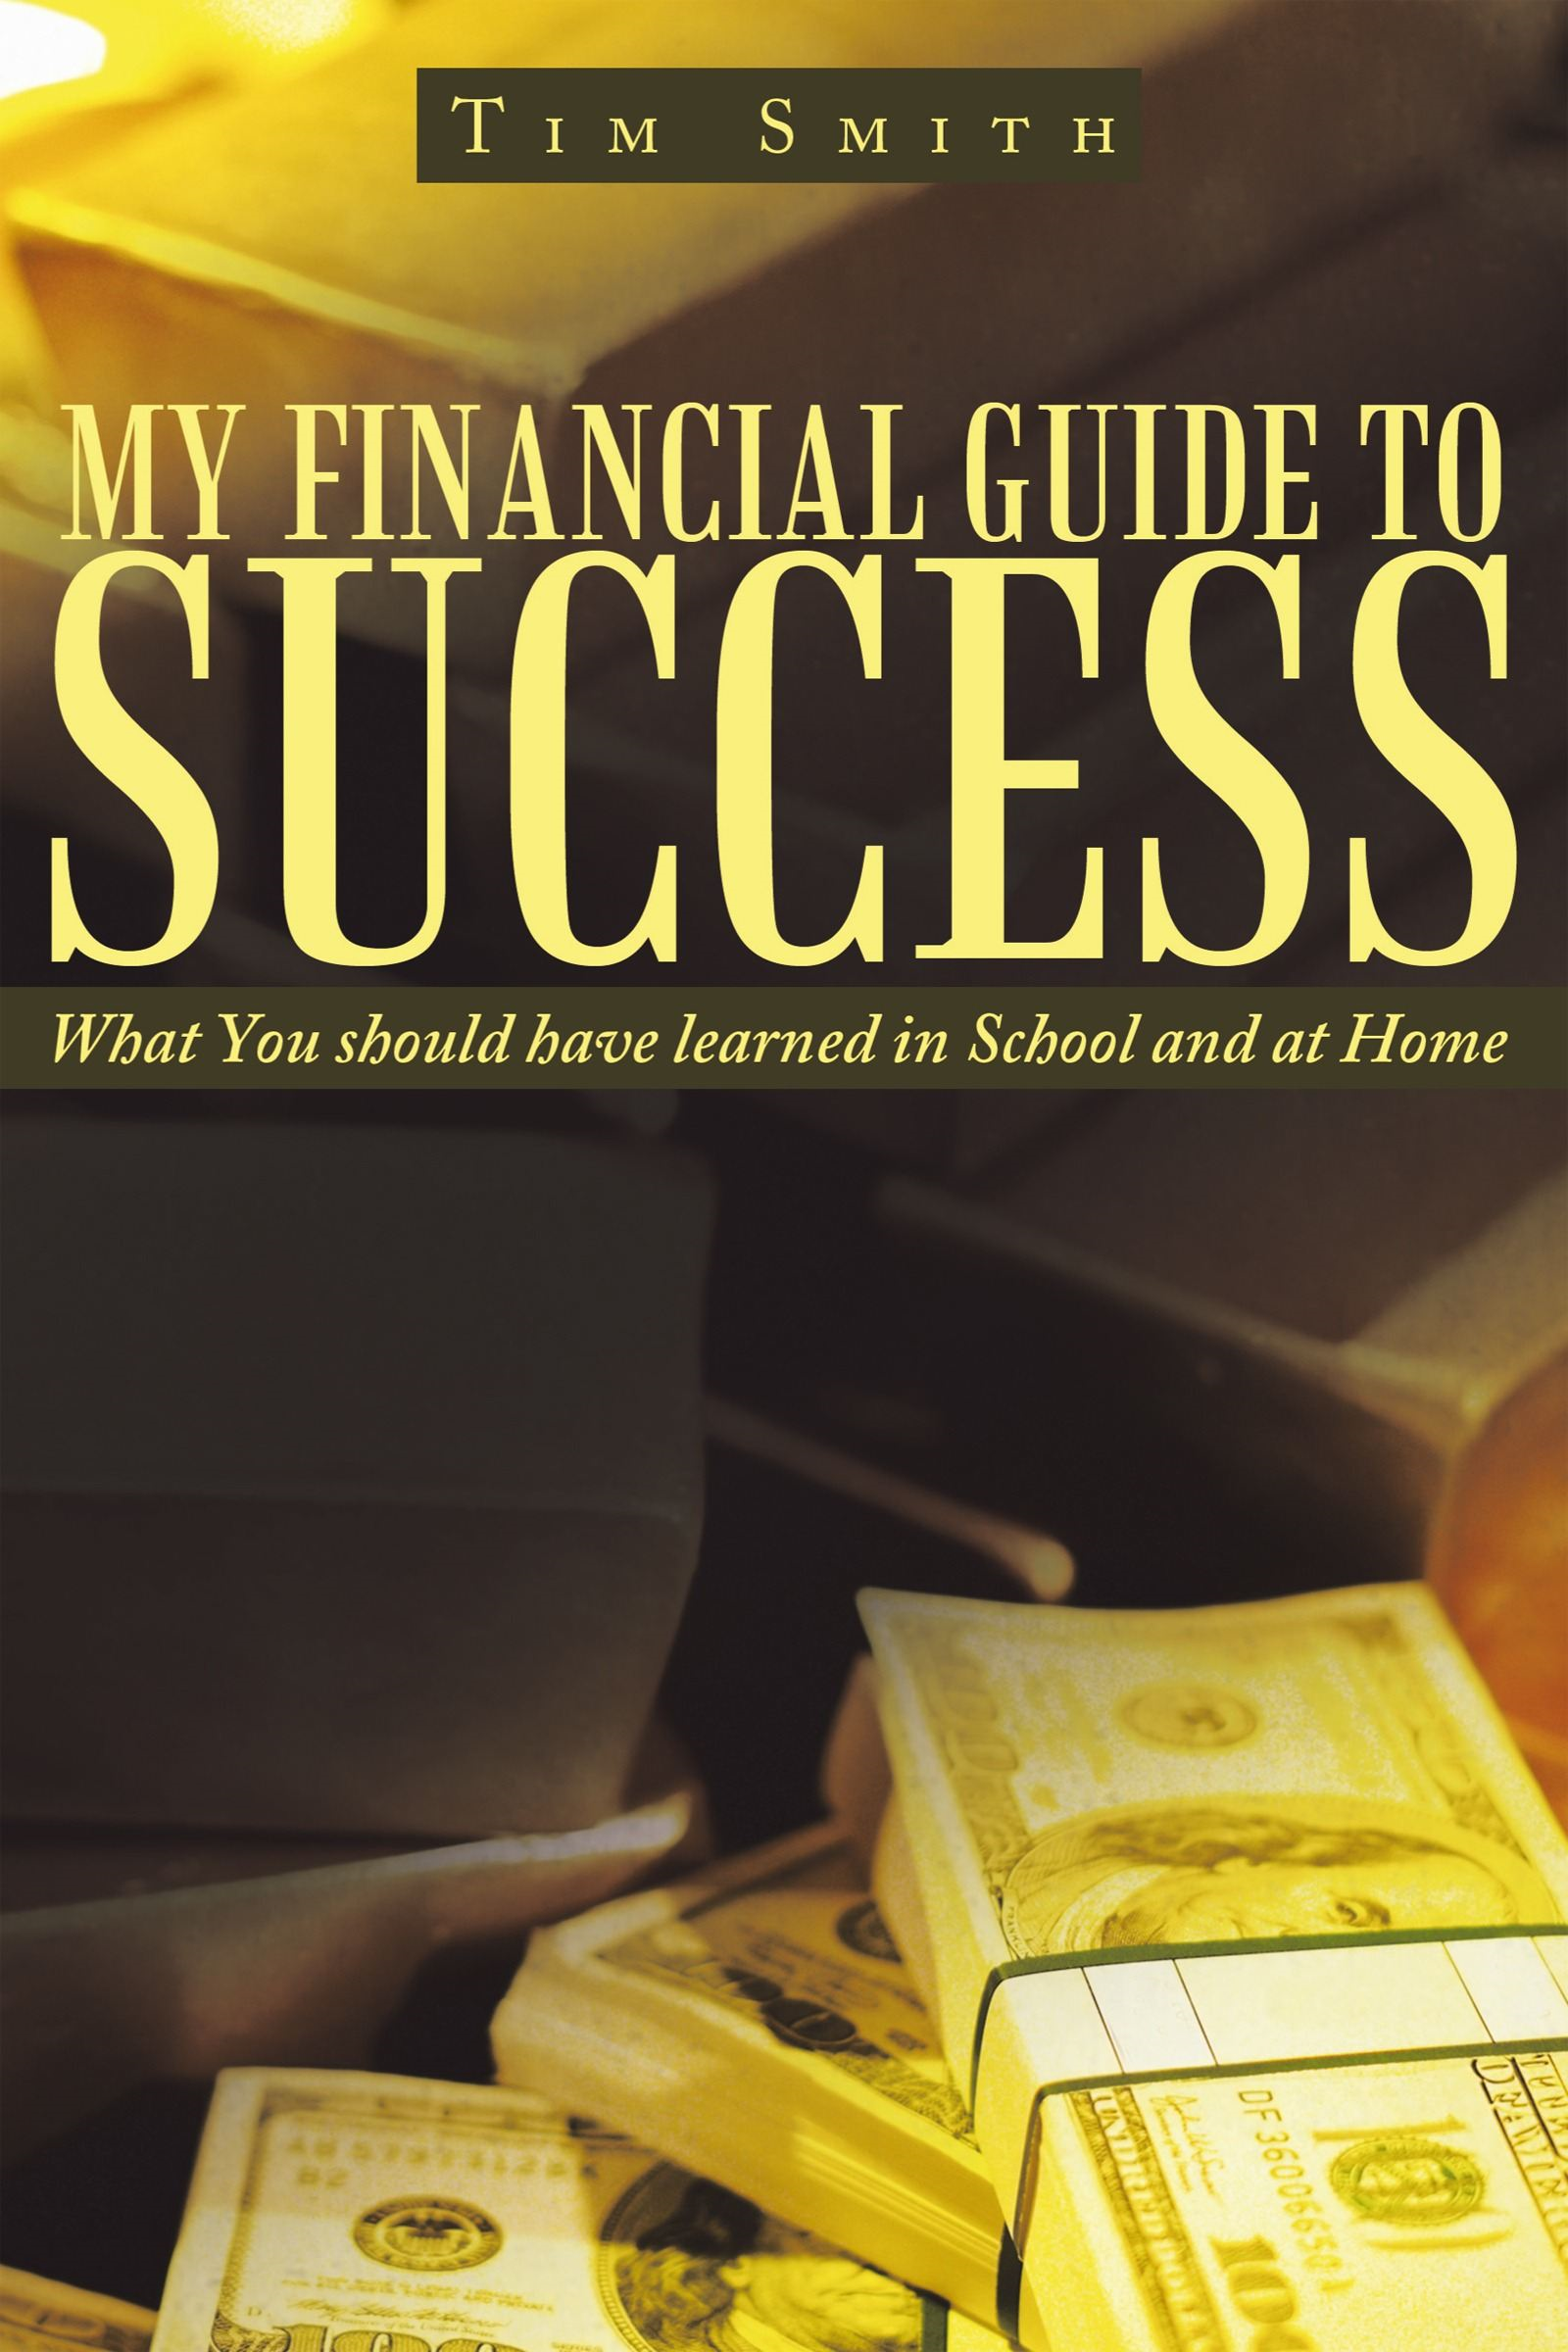 My Financial Guide to Success